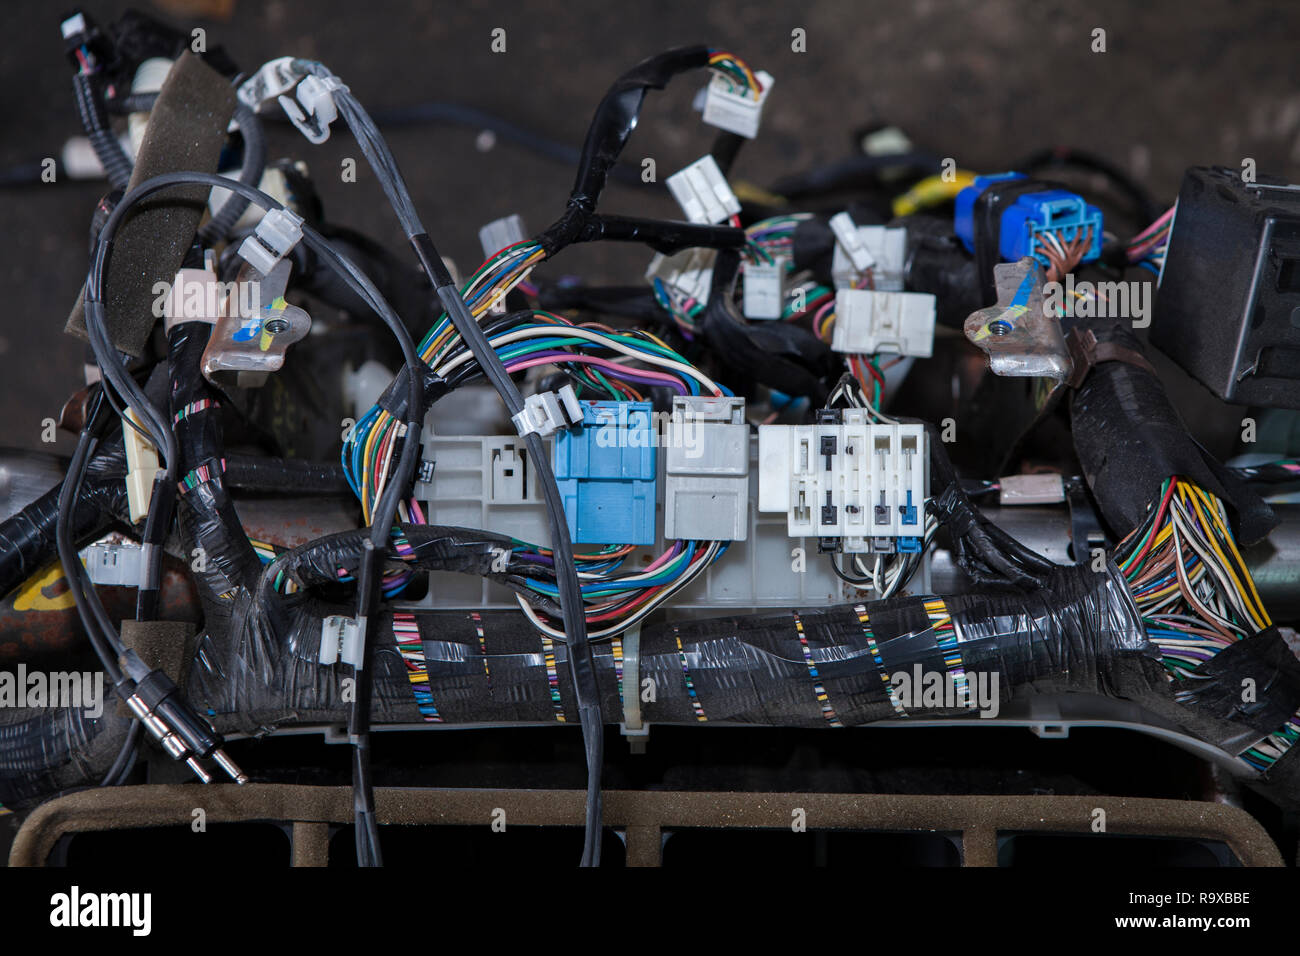 hight resolution of repair the car wiring a large tangle of ravel multicolored wires from the car wiring lies in the cabin of the dismantled car with connectors and plu